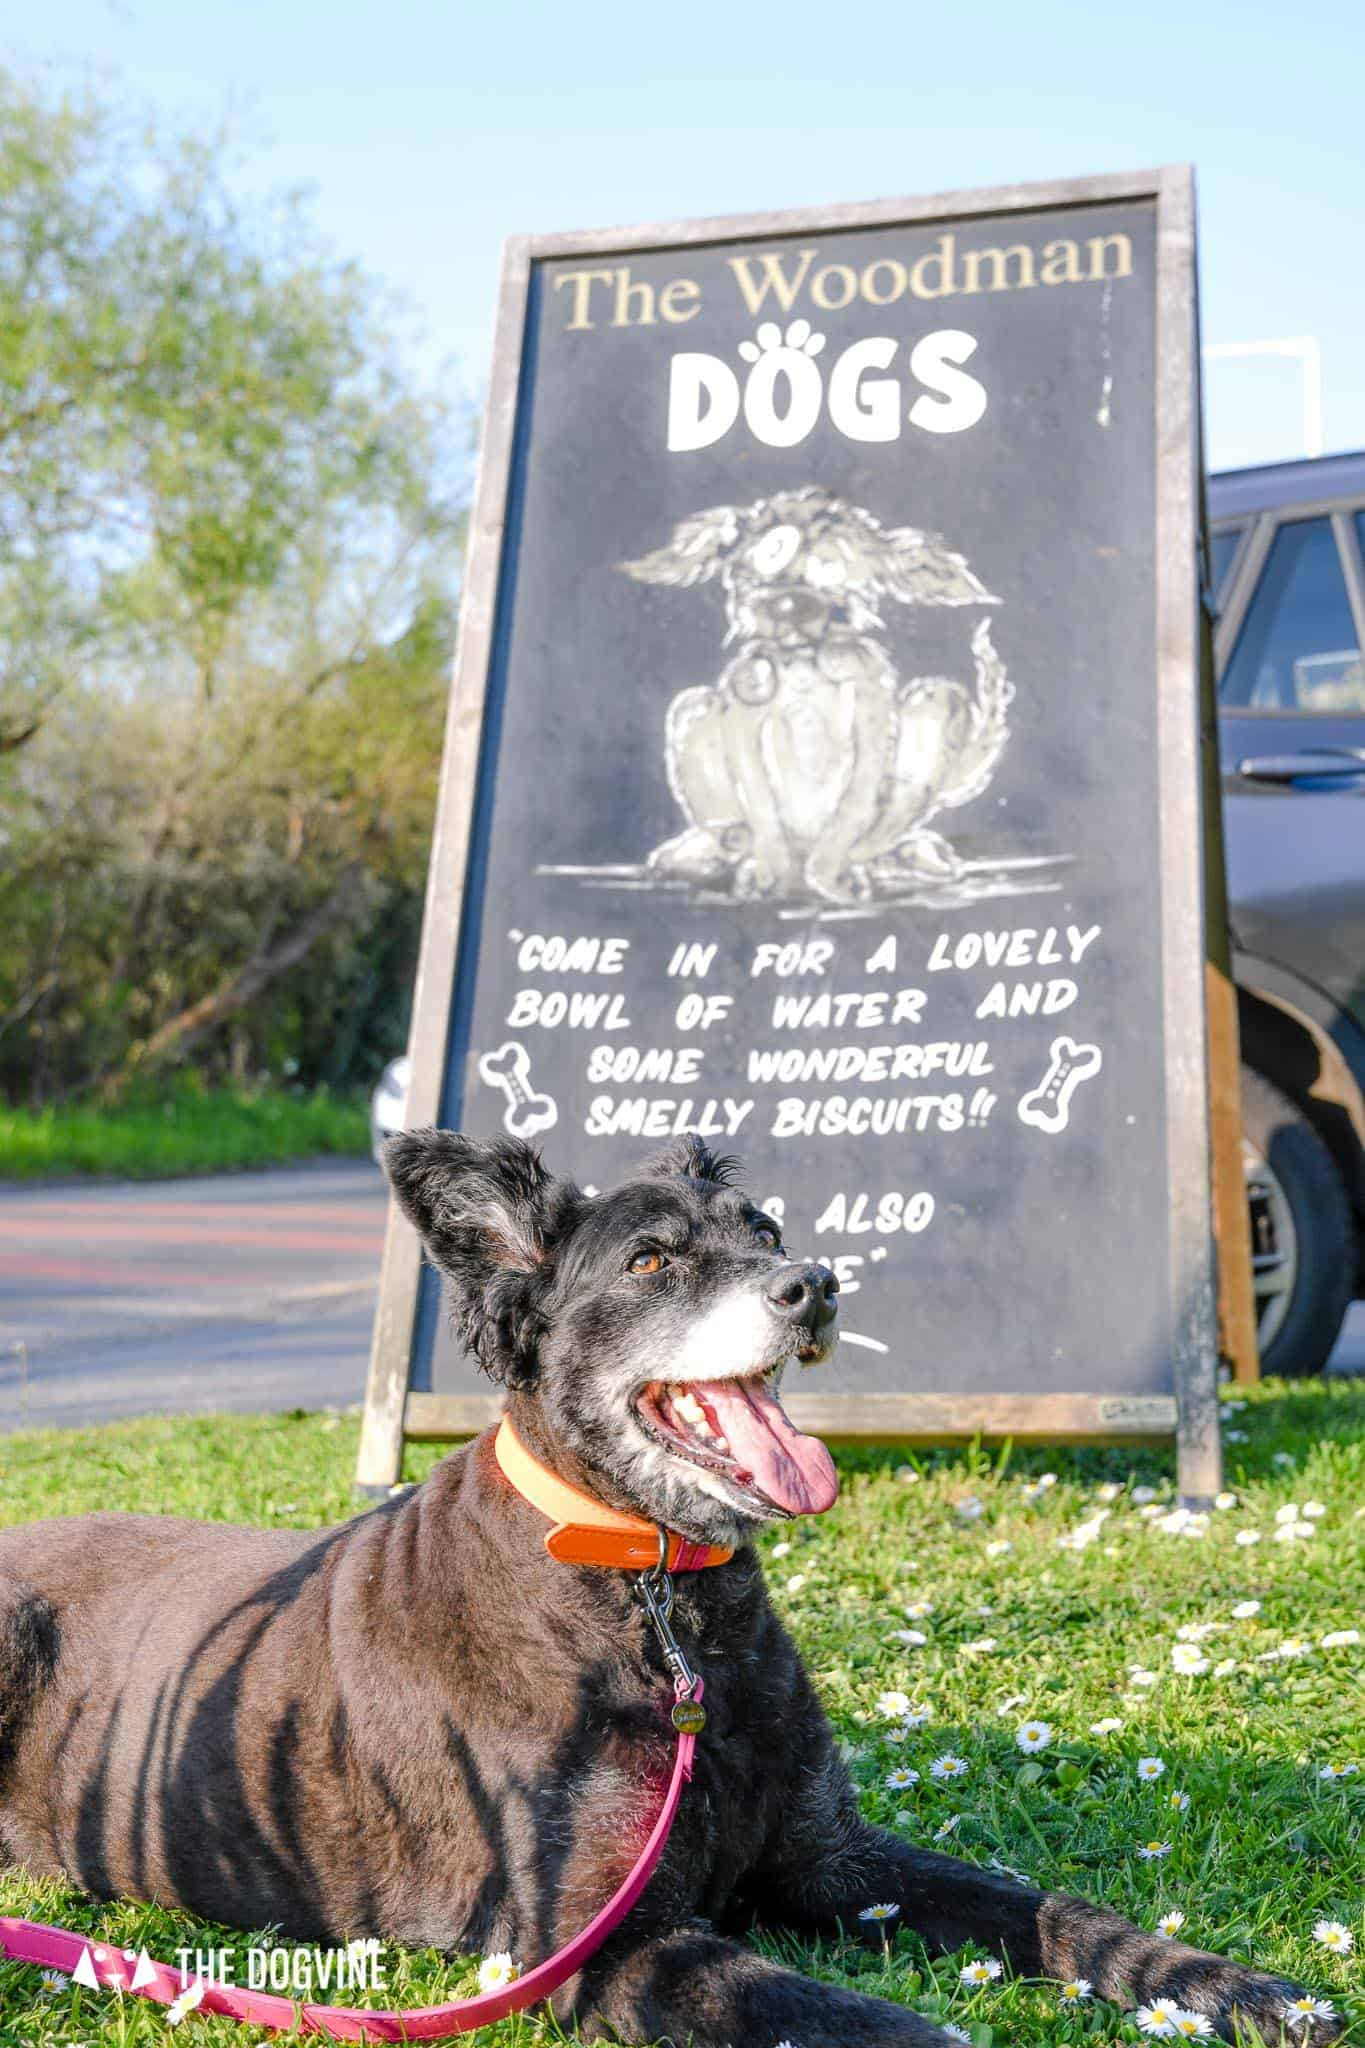 Dog-friendly Pub Ruislip - The Woodman